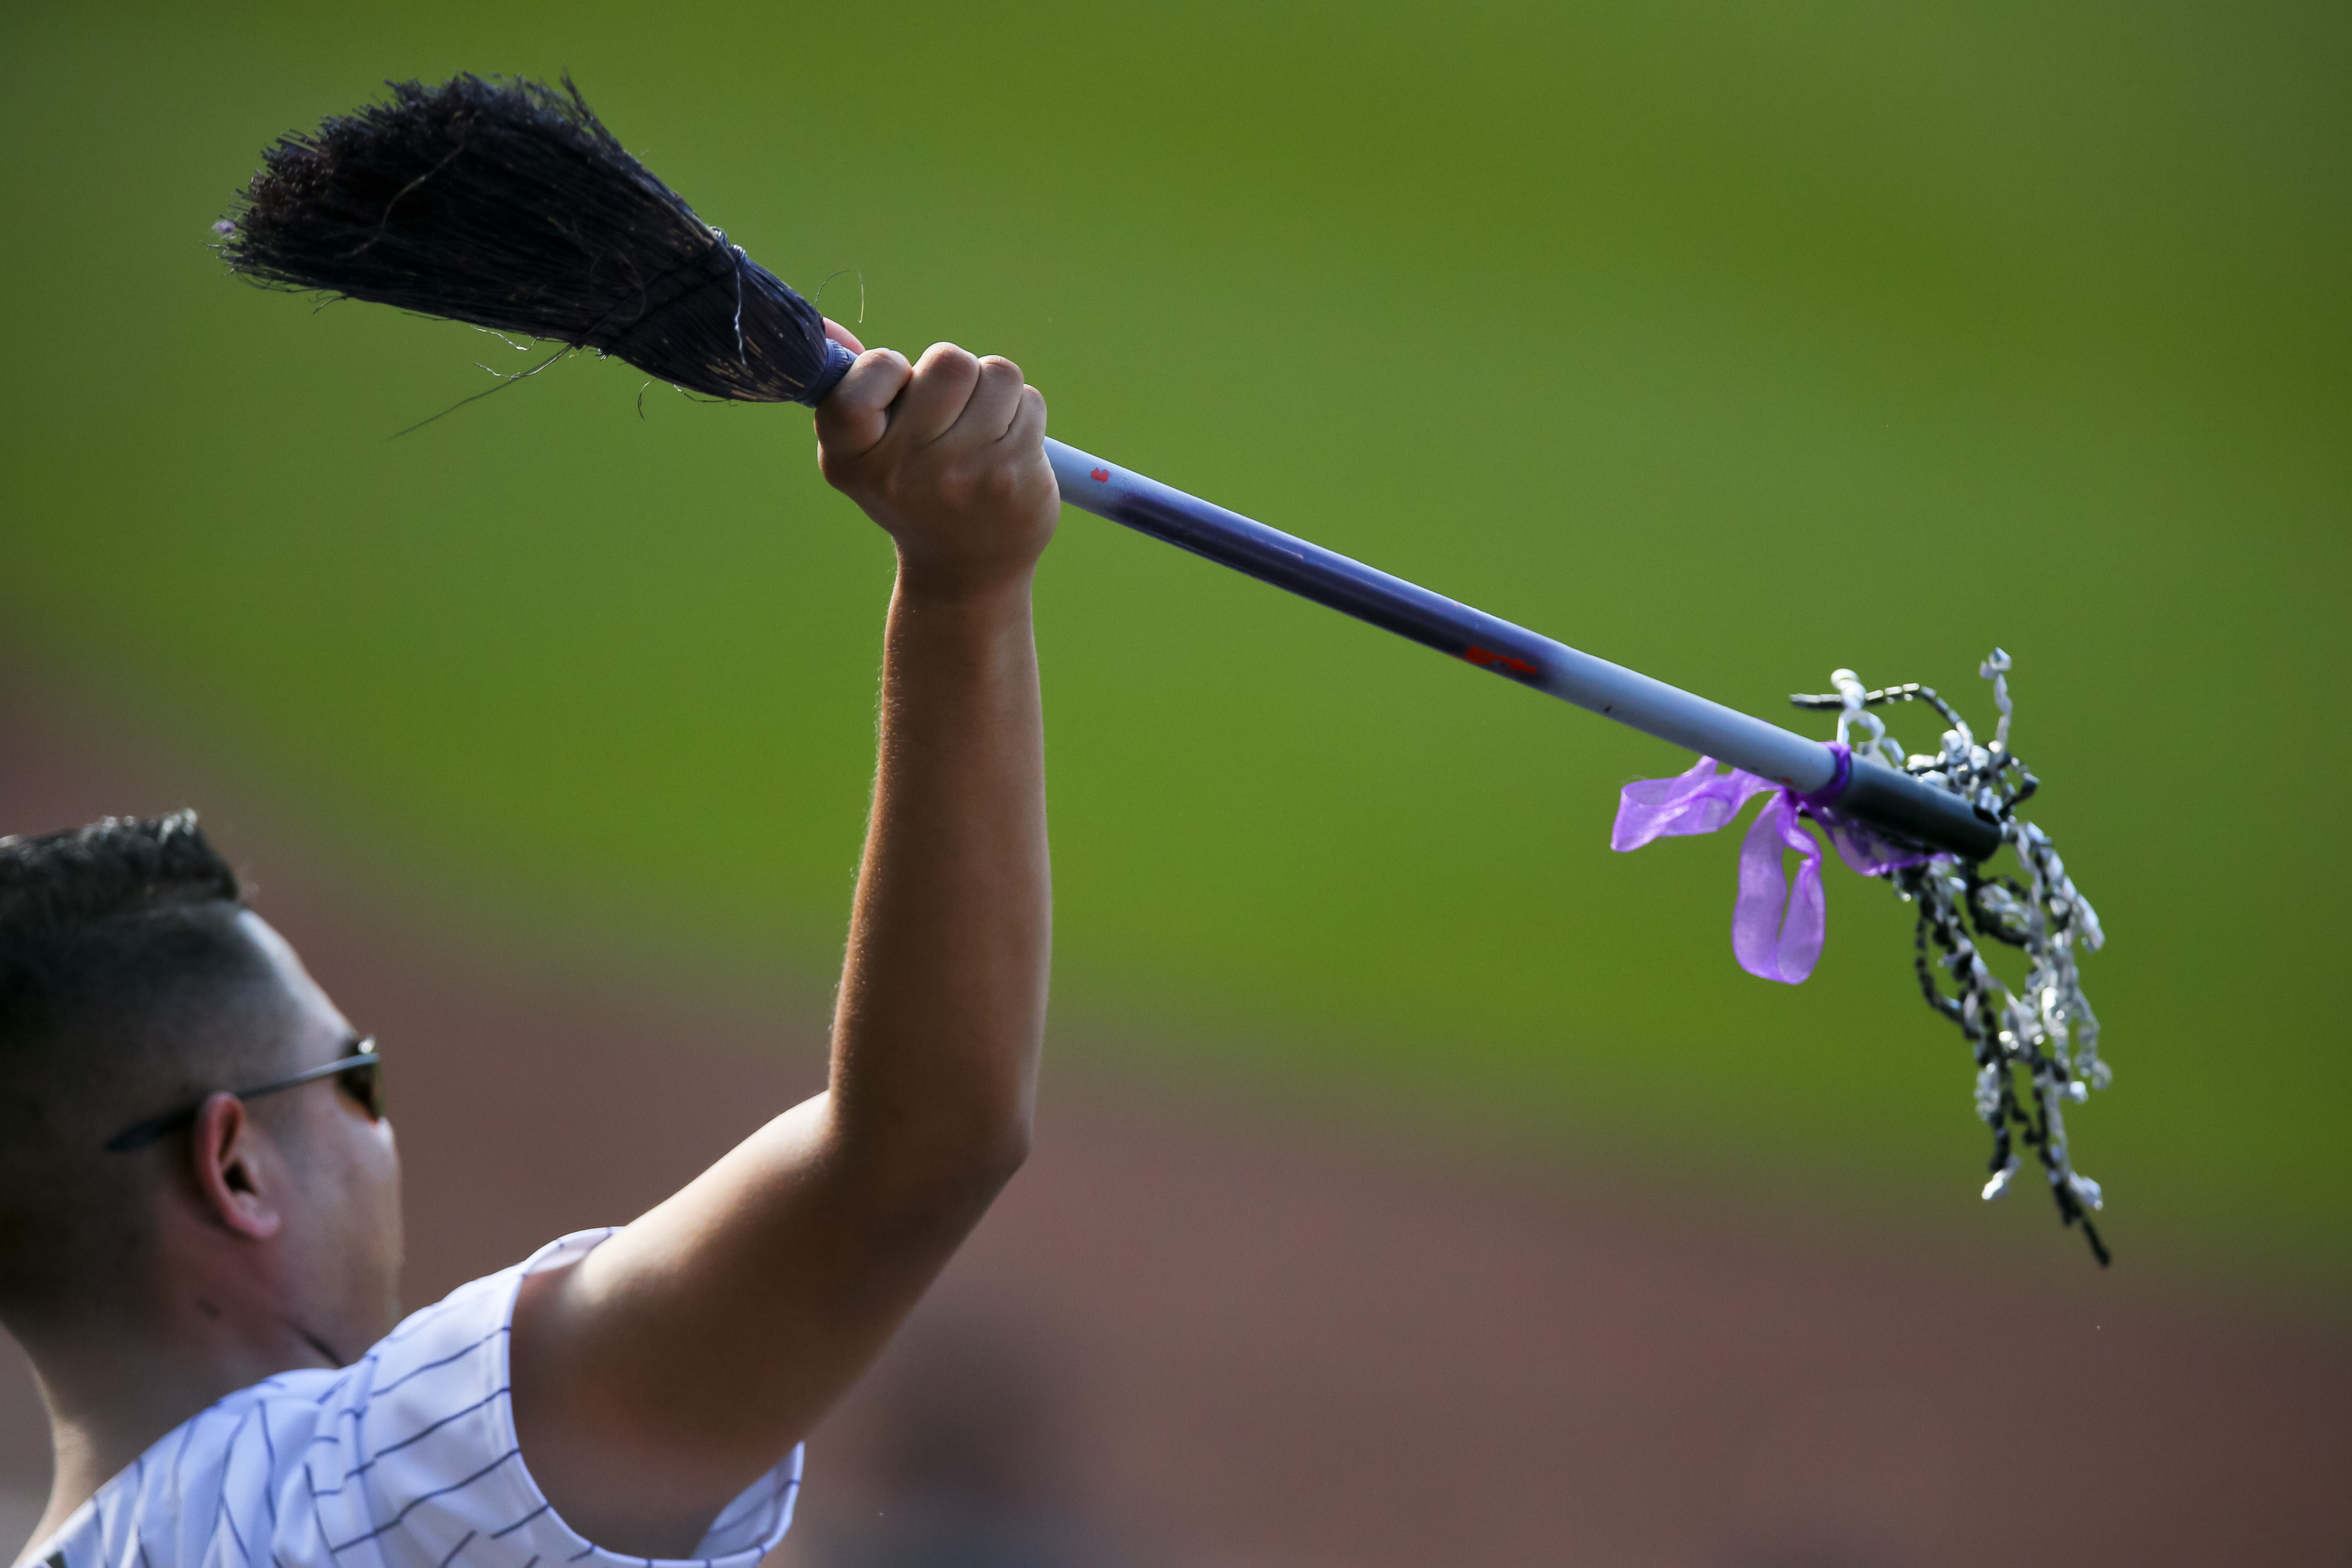 A Colorado Rockies fan cheers with a broom as his team went on to sweep the three game series with the Los Angeles Dodgers after defeating them 12-5 at Coors Field on Sept. 27, 2015. (Photo by Justin Edmonds/Getty Images)